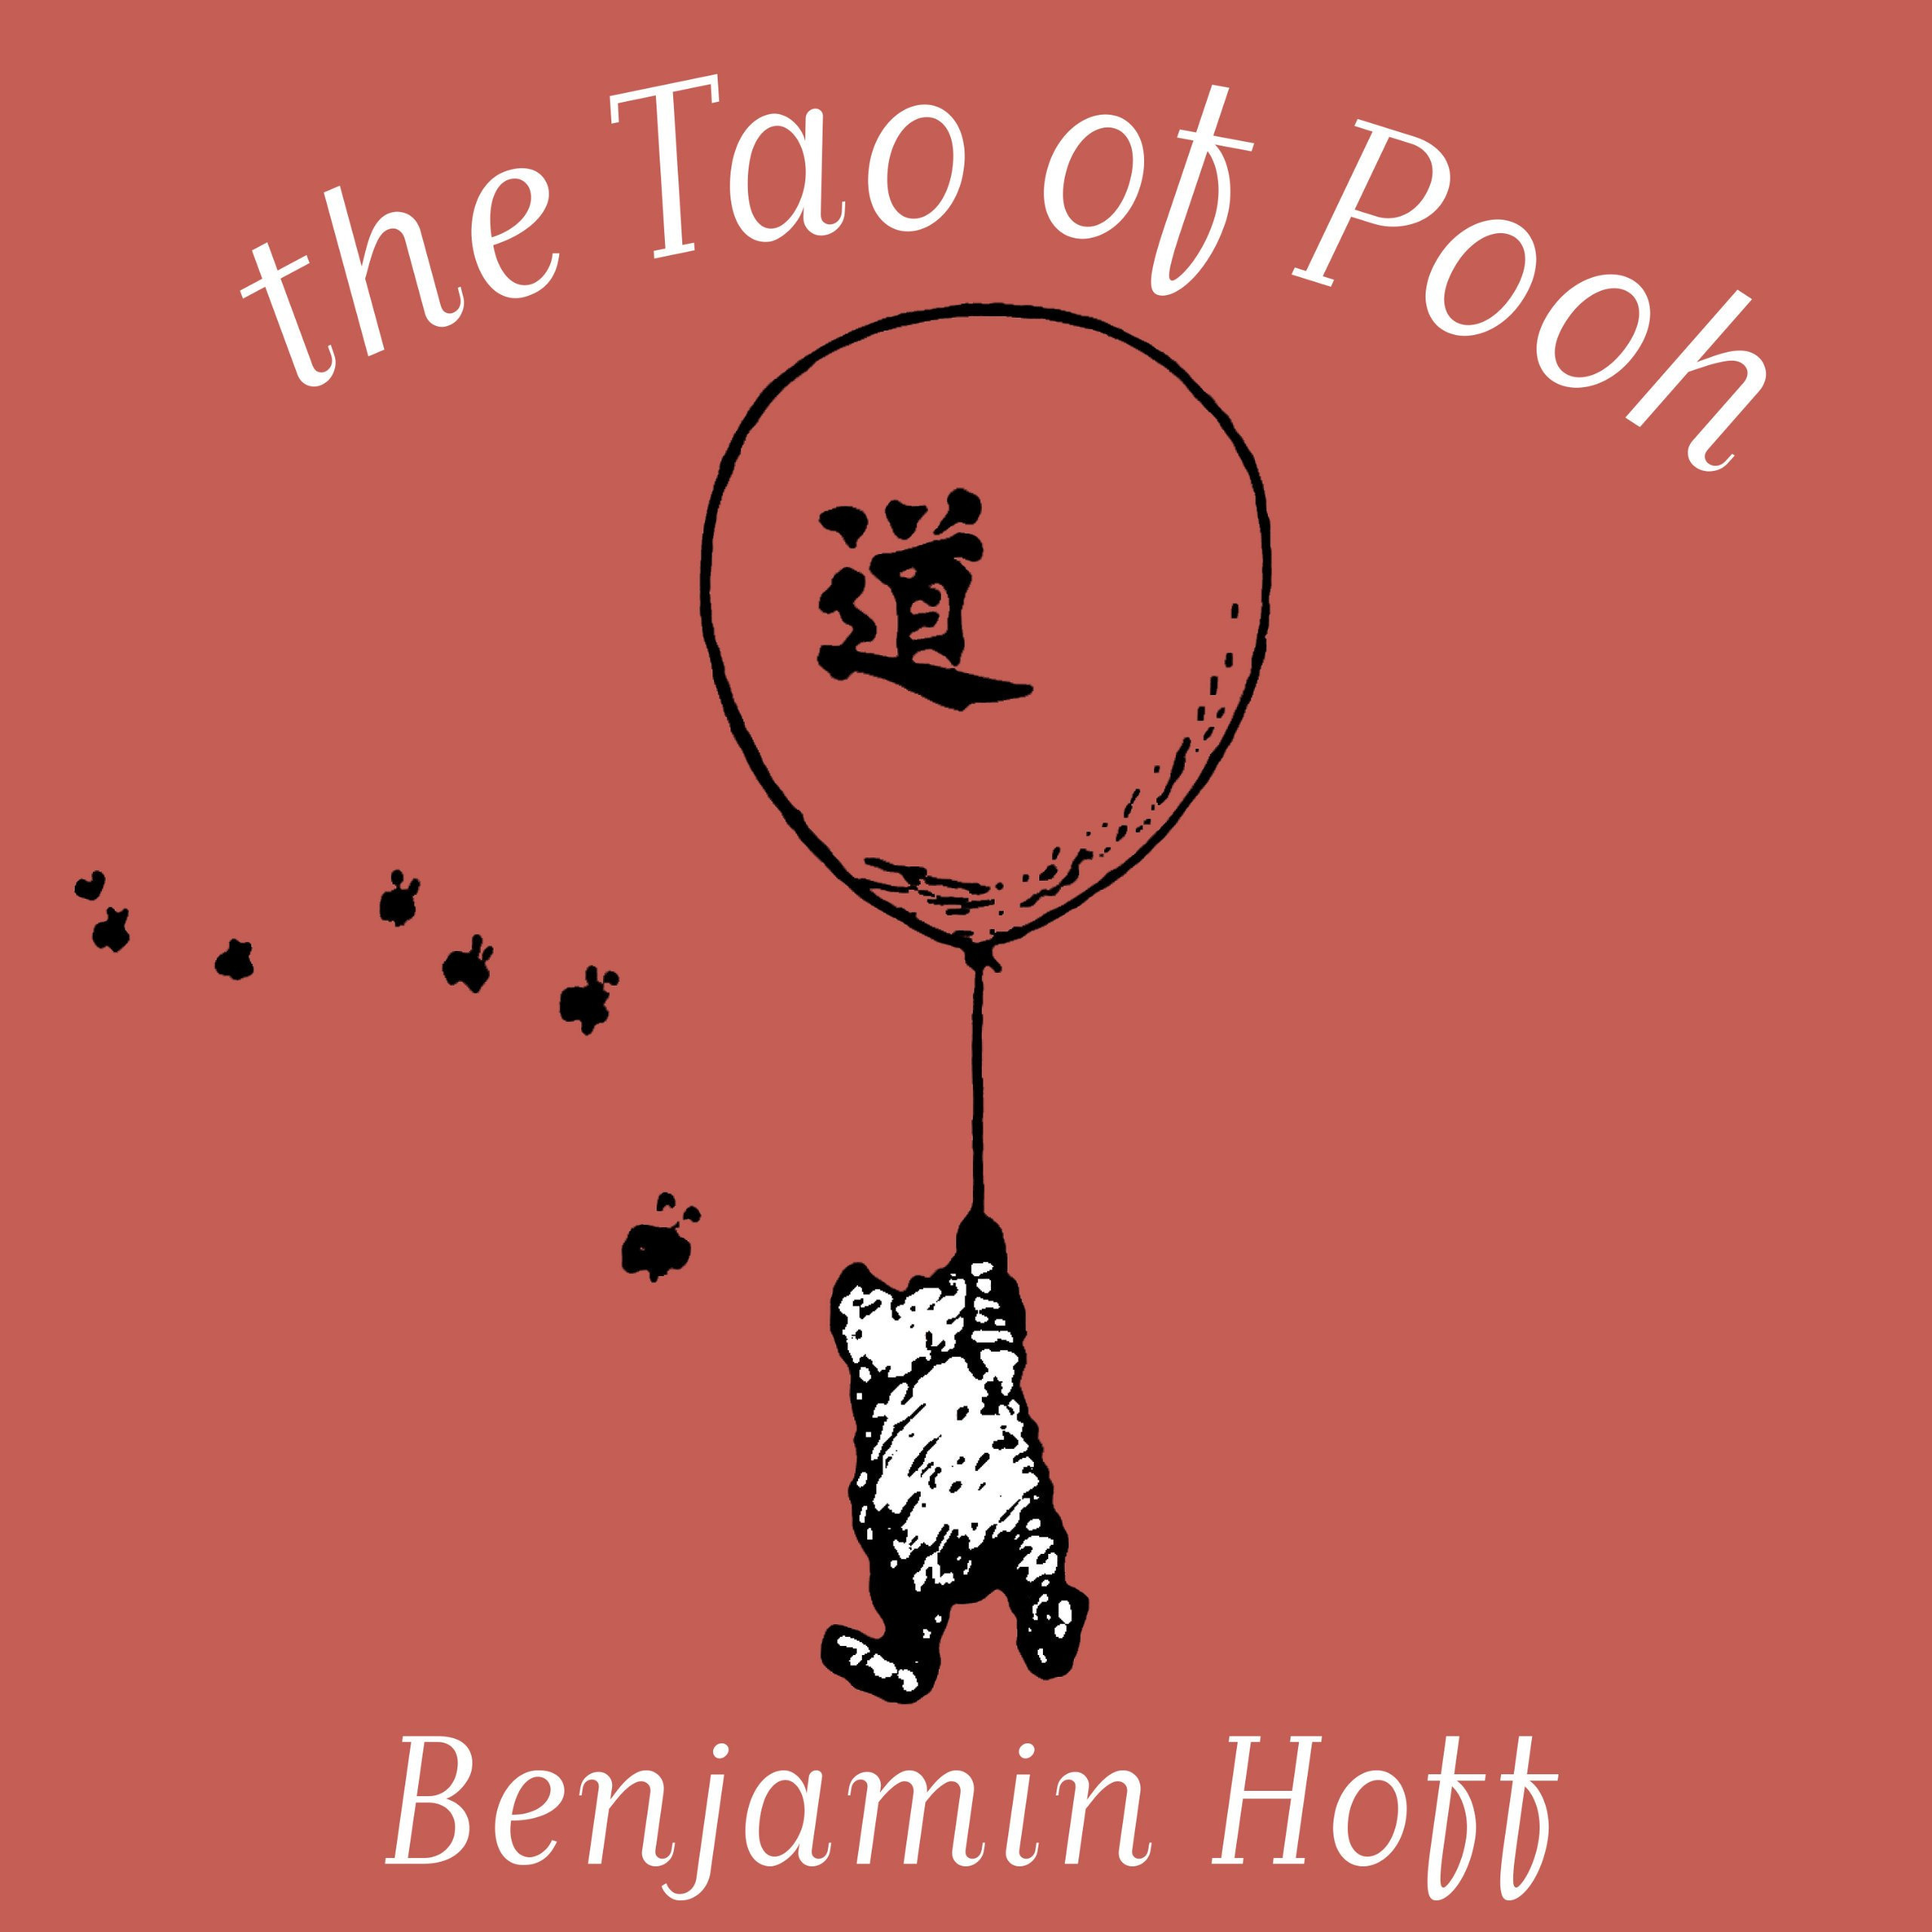 tao of pooh summary Free summary and analysis of the events in a a milne's the complete tales of winnie-the-pooh that won't make you snore we promise.